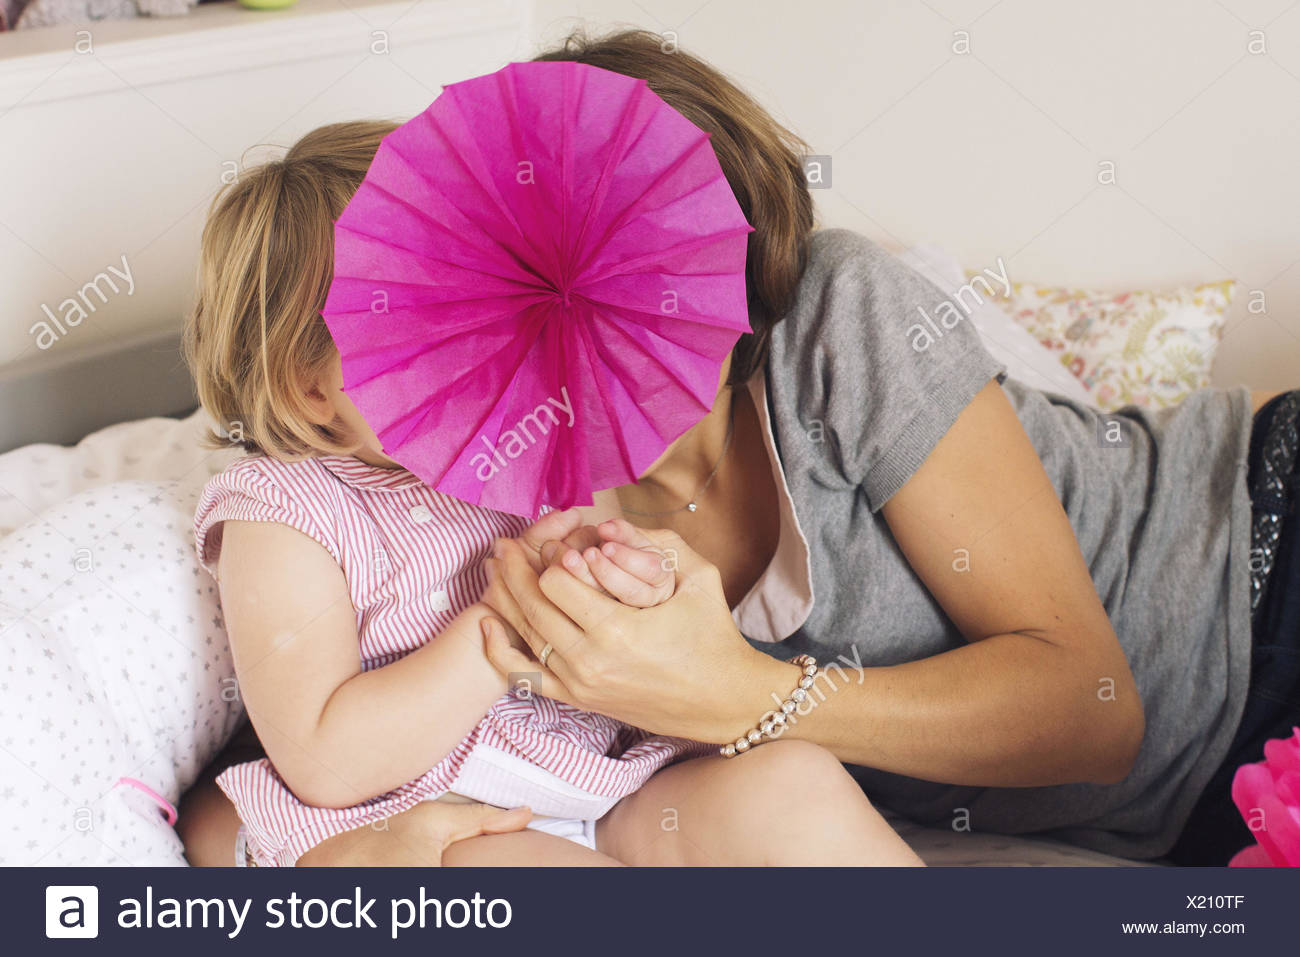 Mother and daughter hiding behind tissue paper flower - Stock Image